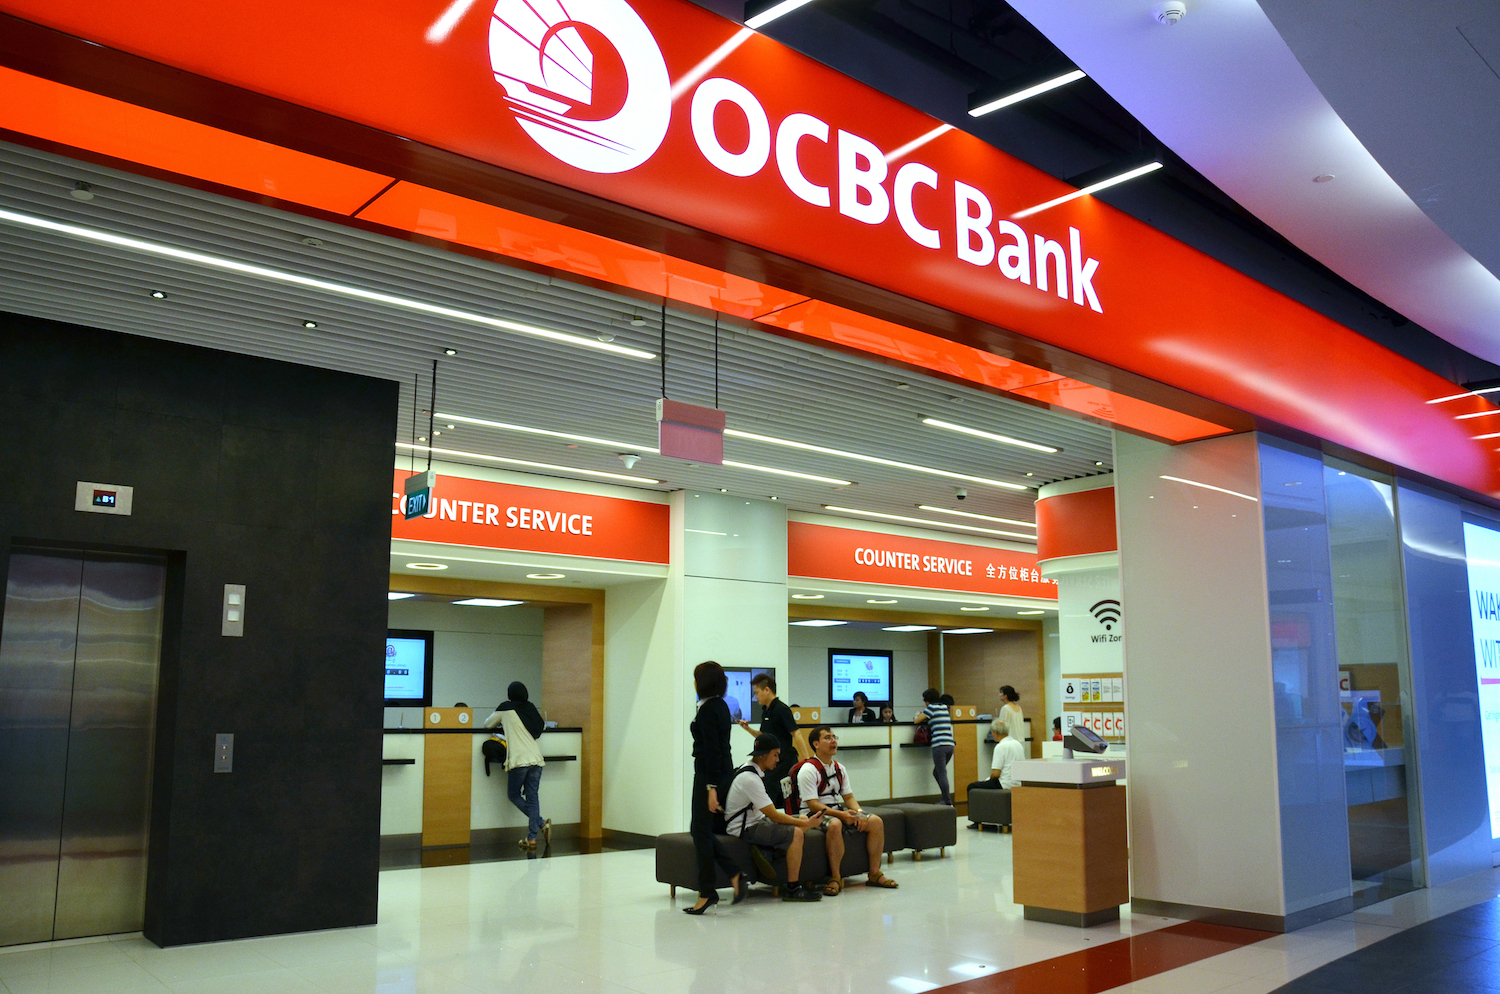 OCBC Trials Blockchain for Interbank Payments - CoinDesk